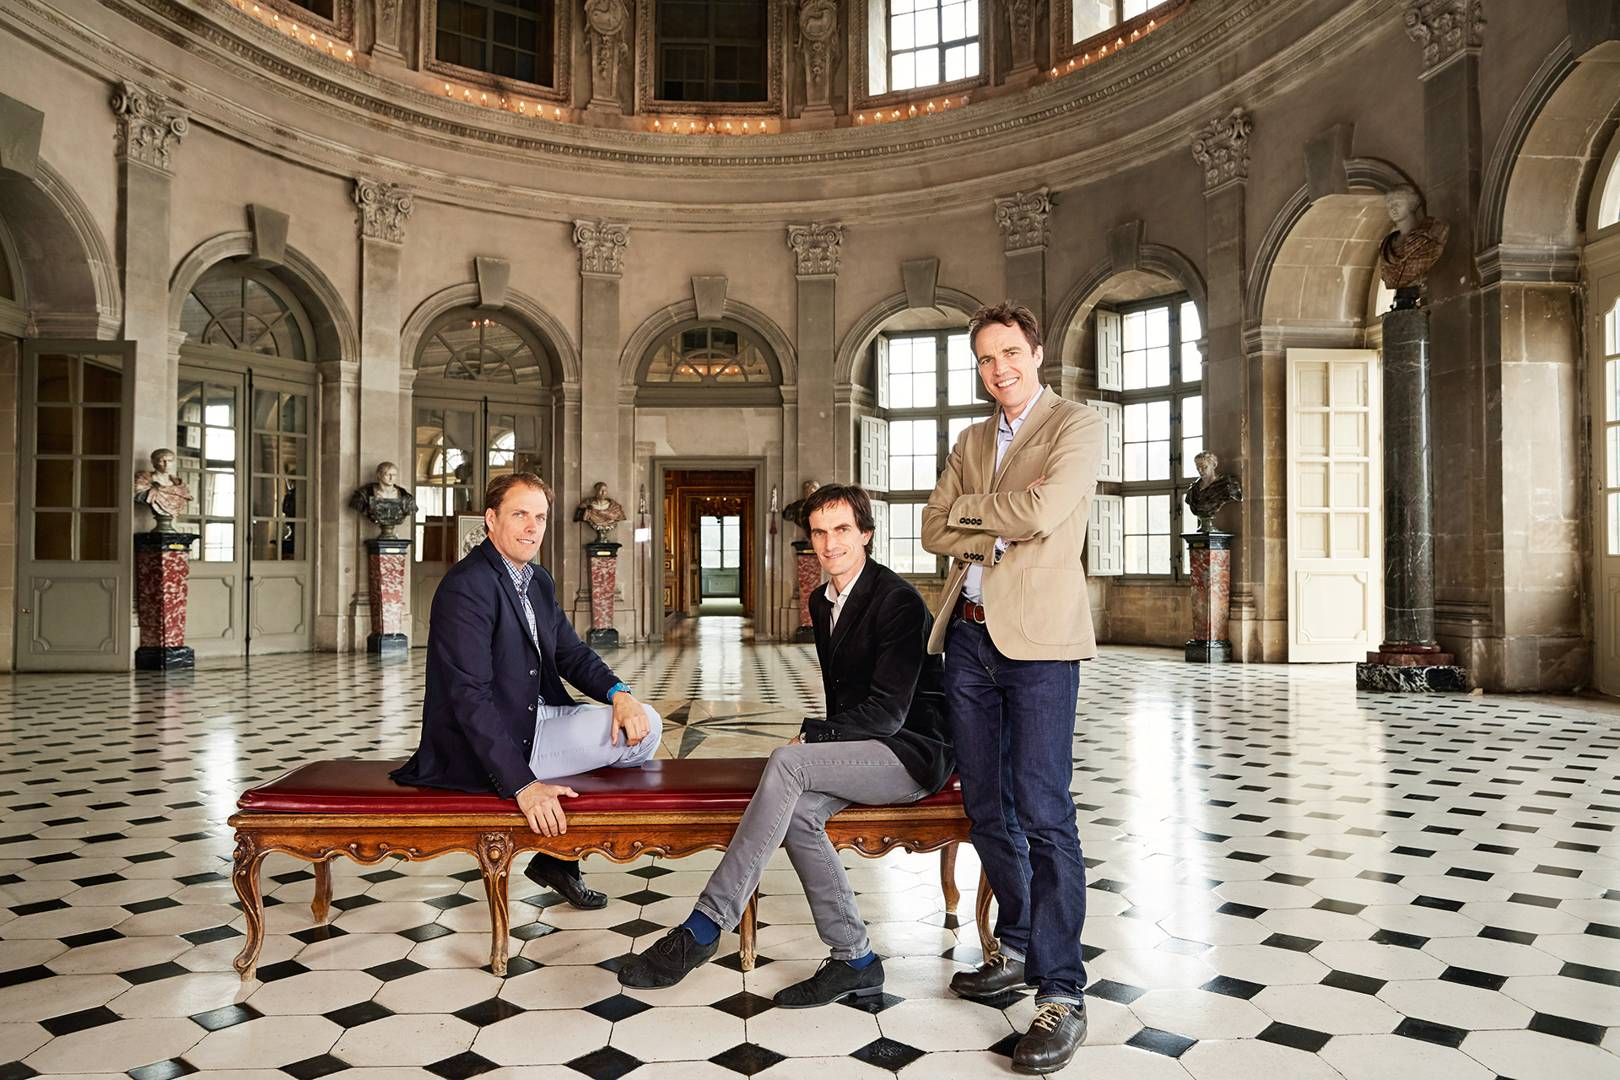 From the Archives: When Tatler met the de Vogüés inside their palatial home, Château Vaux-le-Vicomte